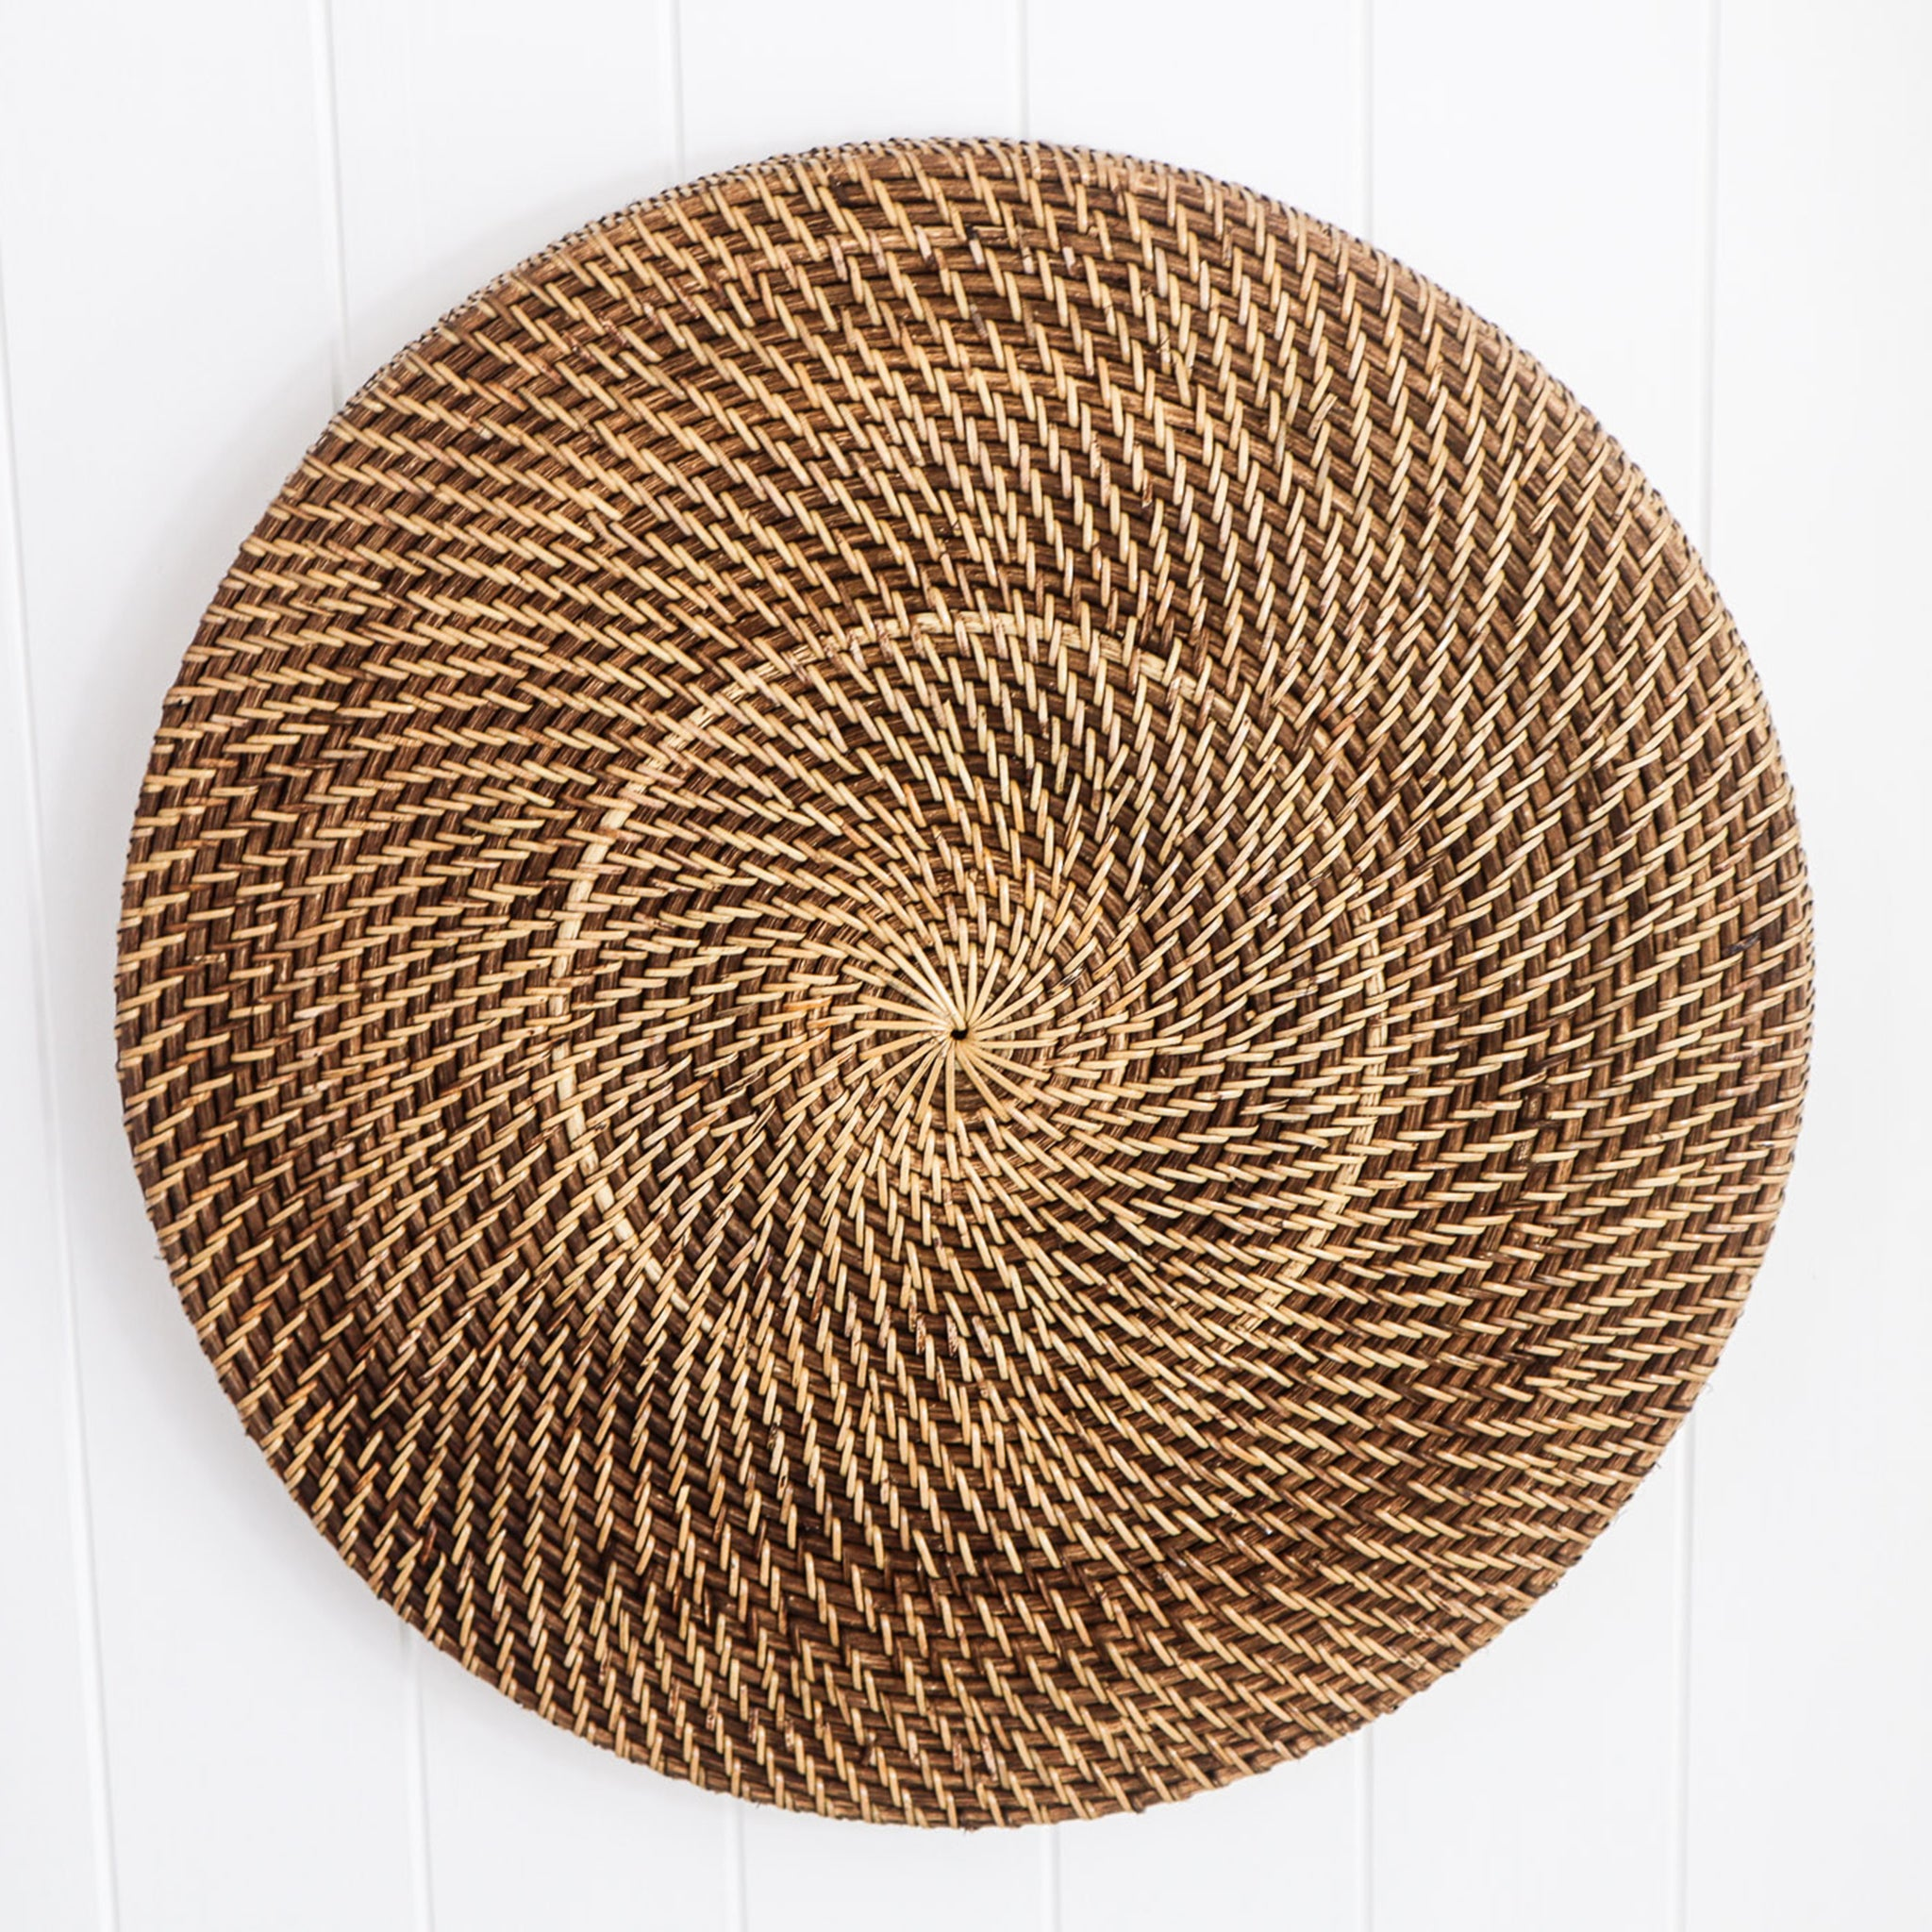 RATTAN LARGE ROUND ENTERTAINING TRAY